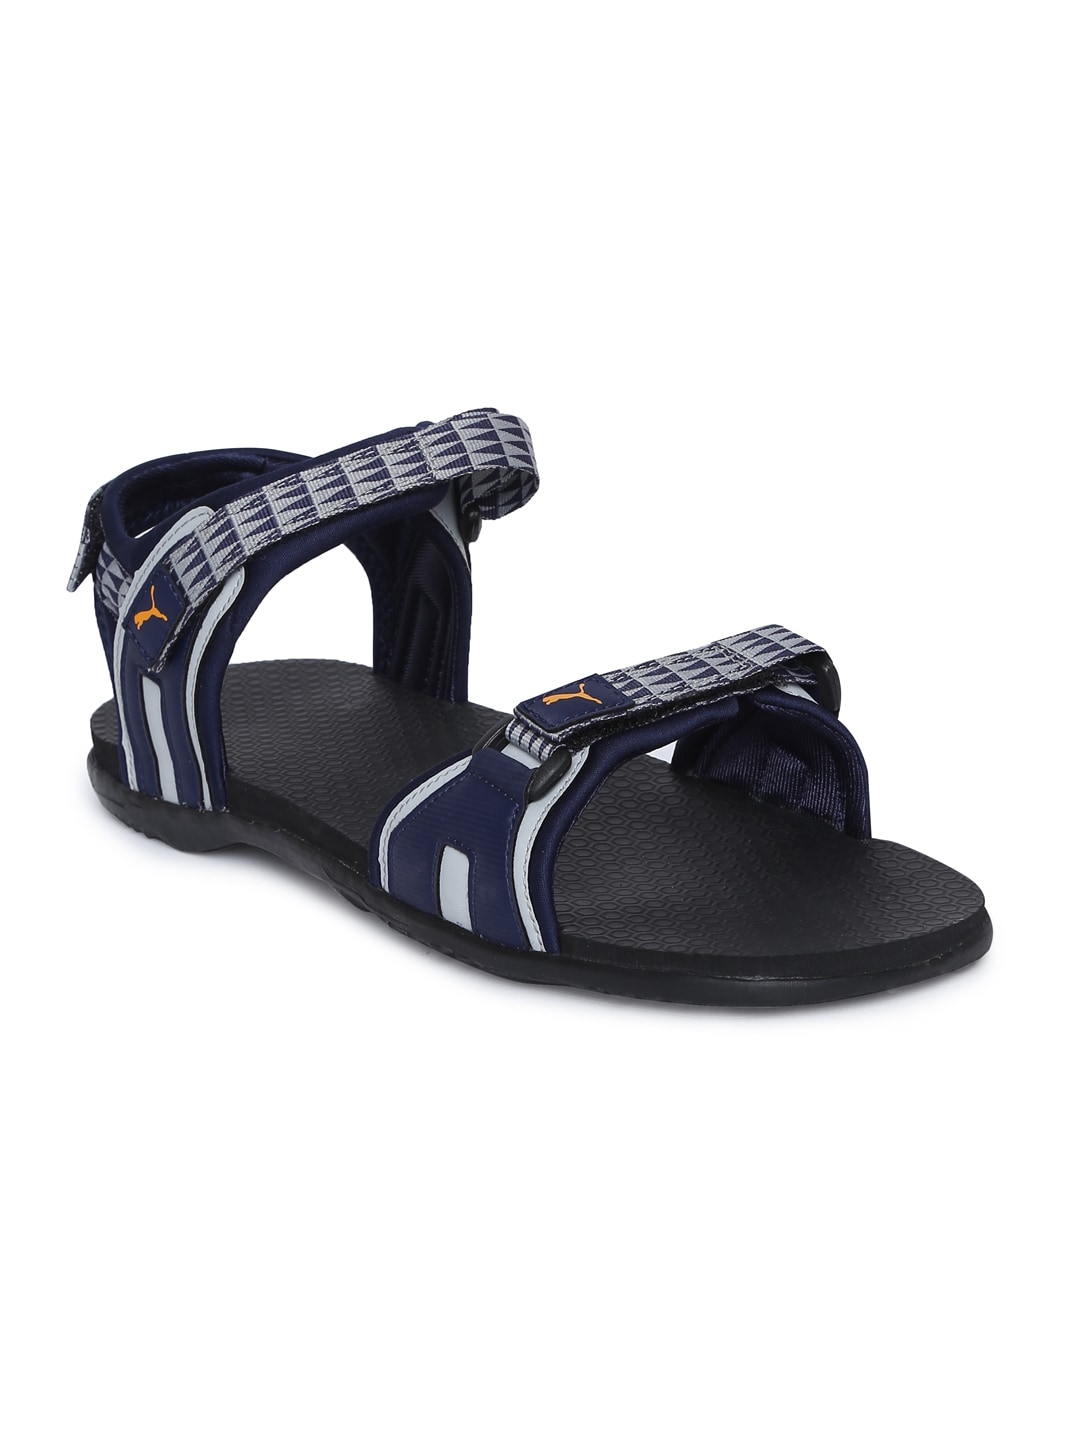 72f0d2002be Sandals For Men - Buy Men Sandals Online in India